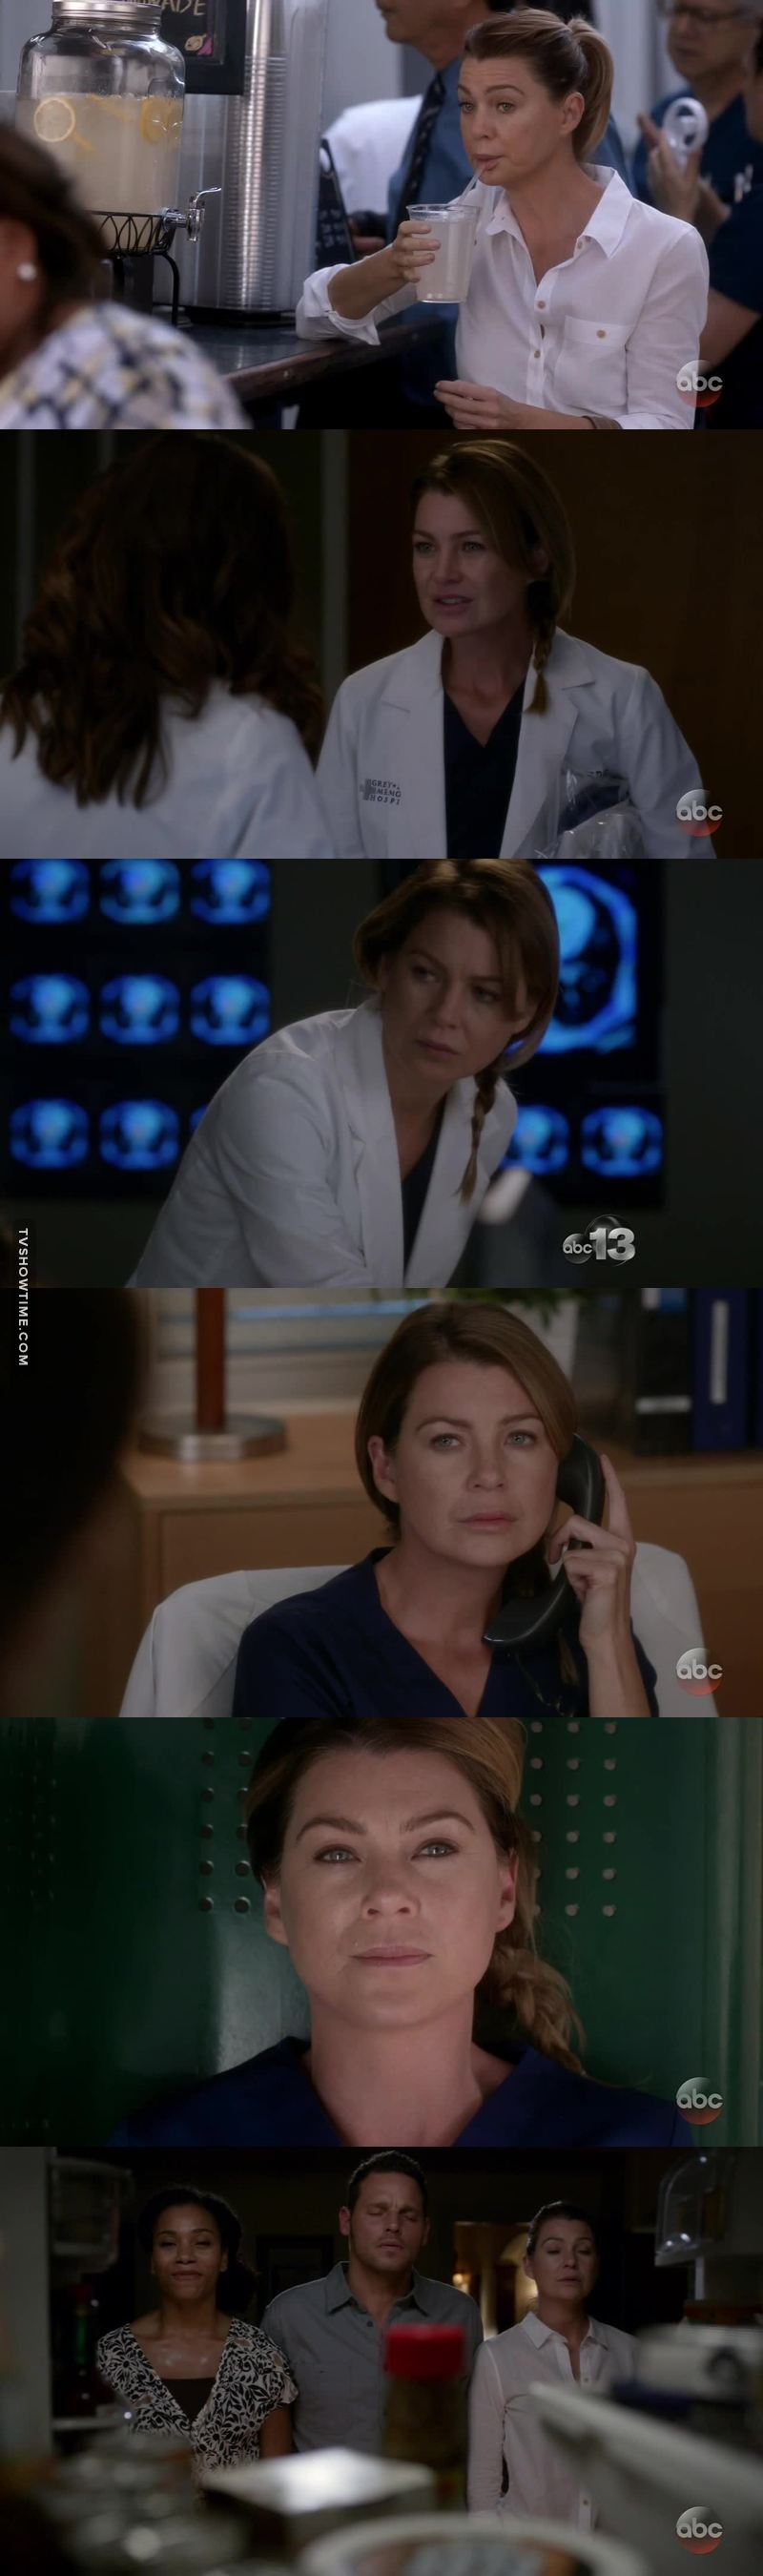 This felt very classic Grey's to me. Meredith was classic Meredith this ep to me. I enjoyed this episode SO MUCH. & I looooove angry, crazy & hilarious Meredith.